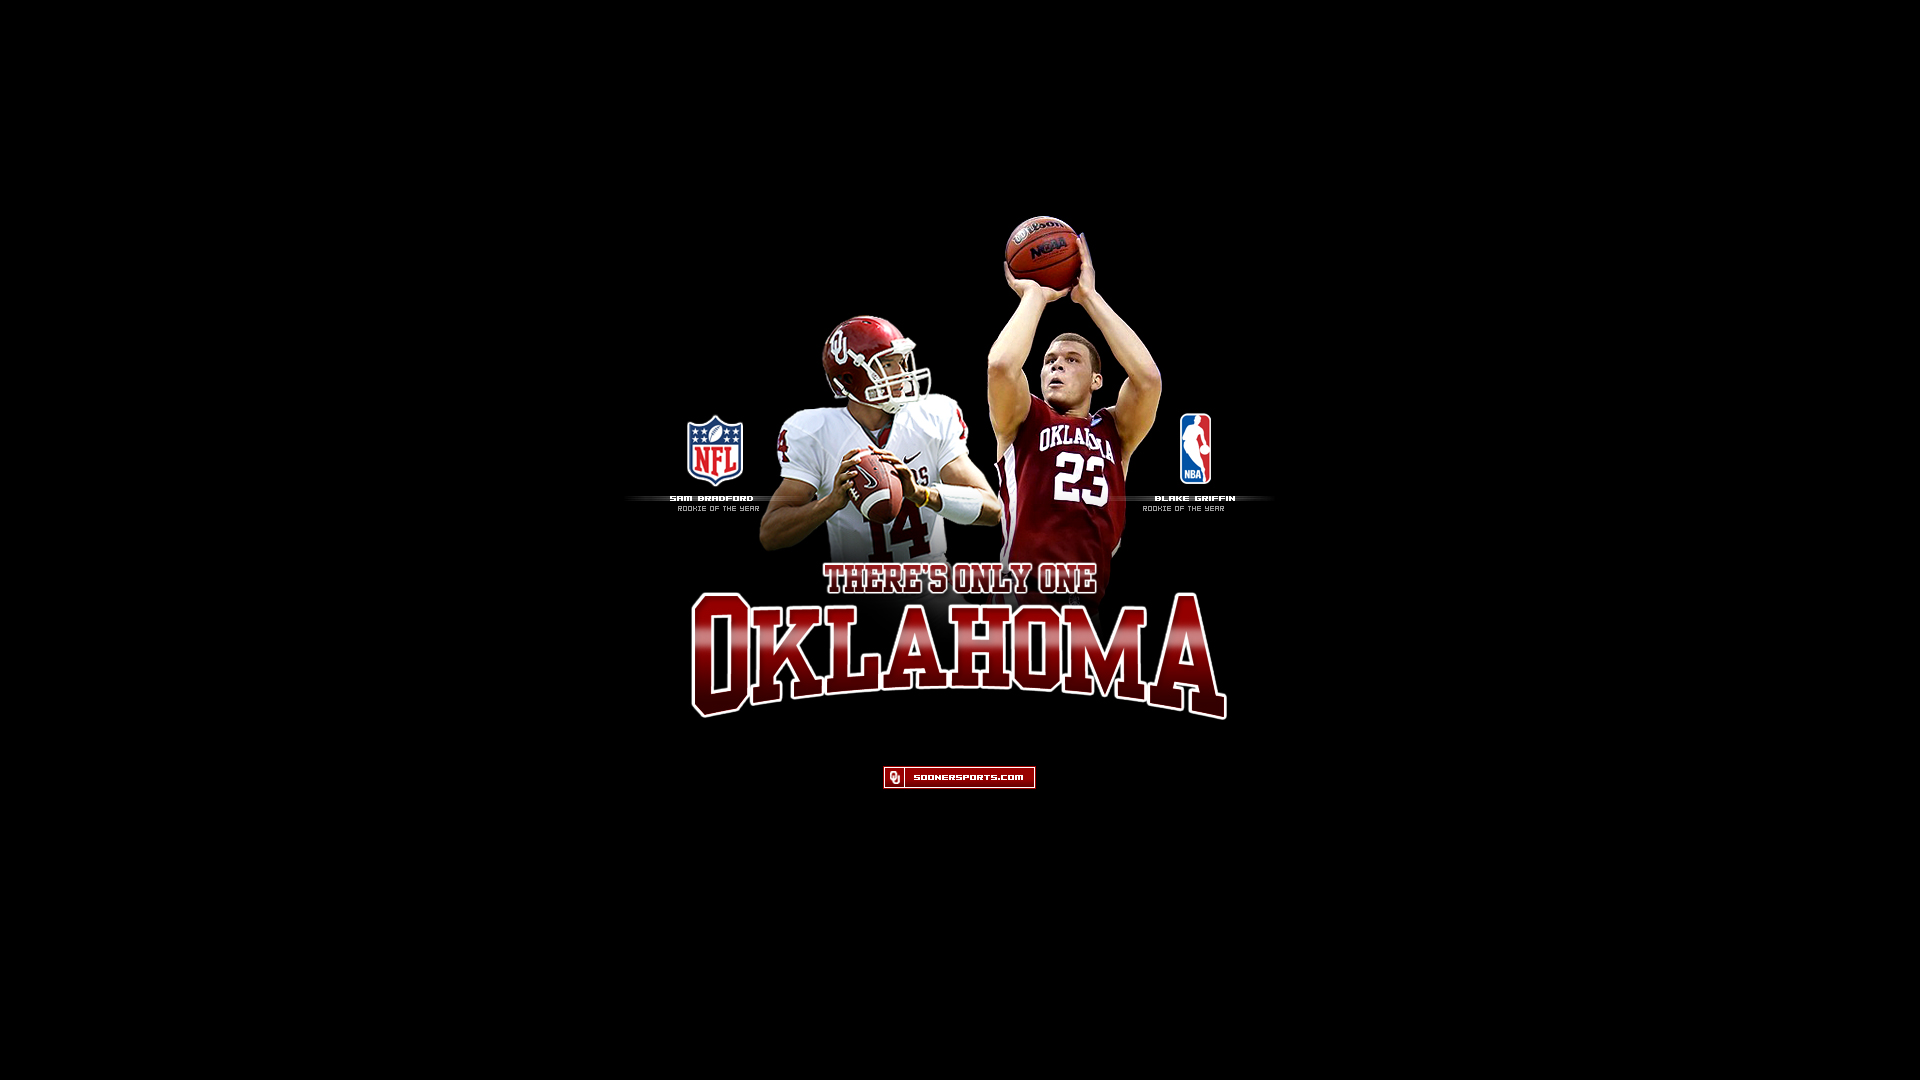 Oklahoma Sooner wallpaper   474635 1920x1080